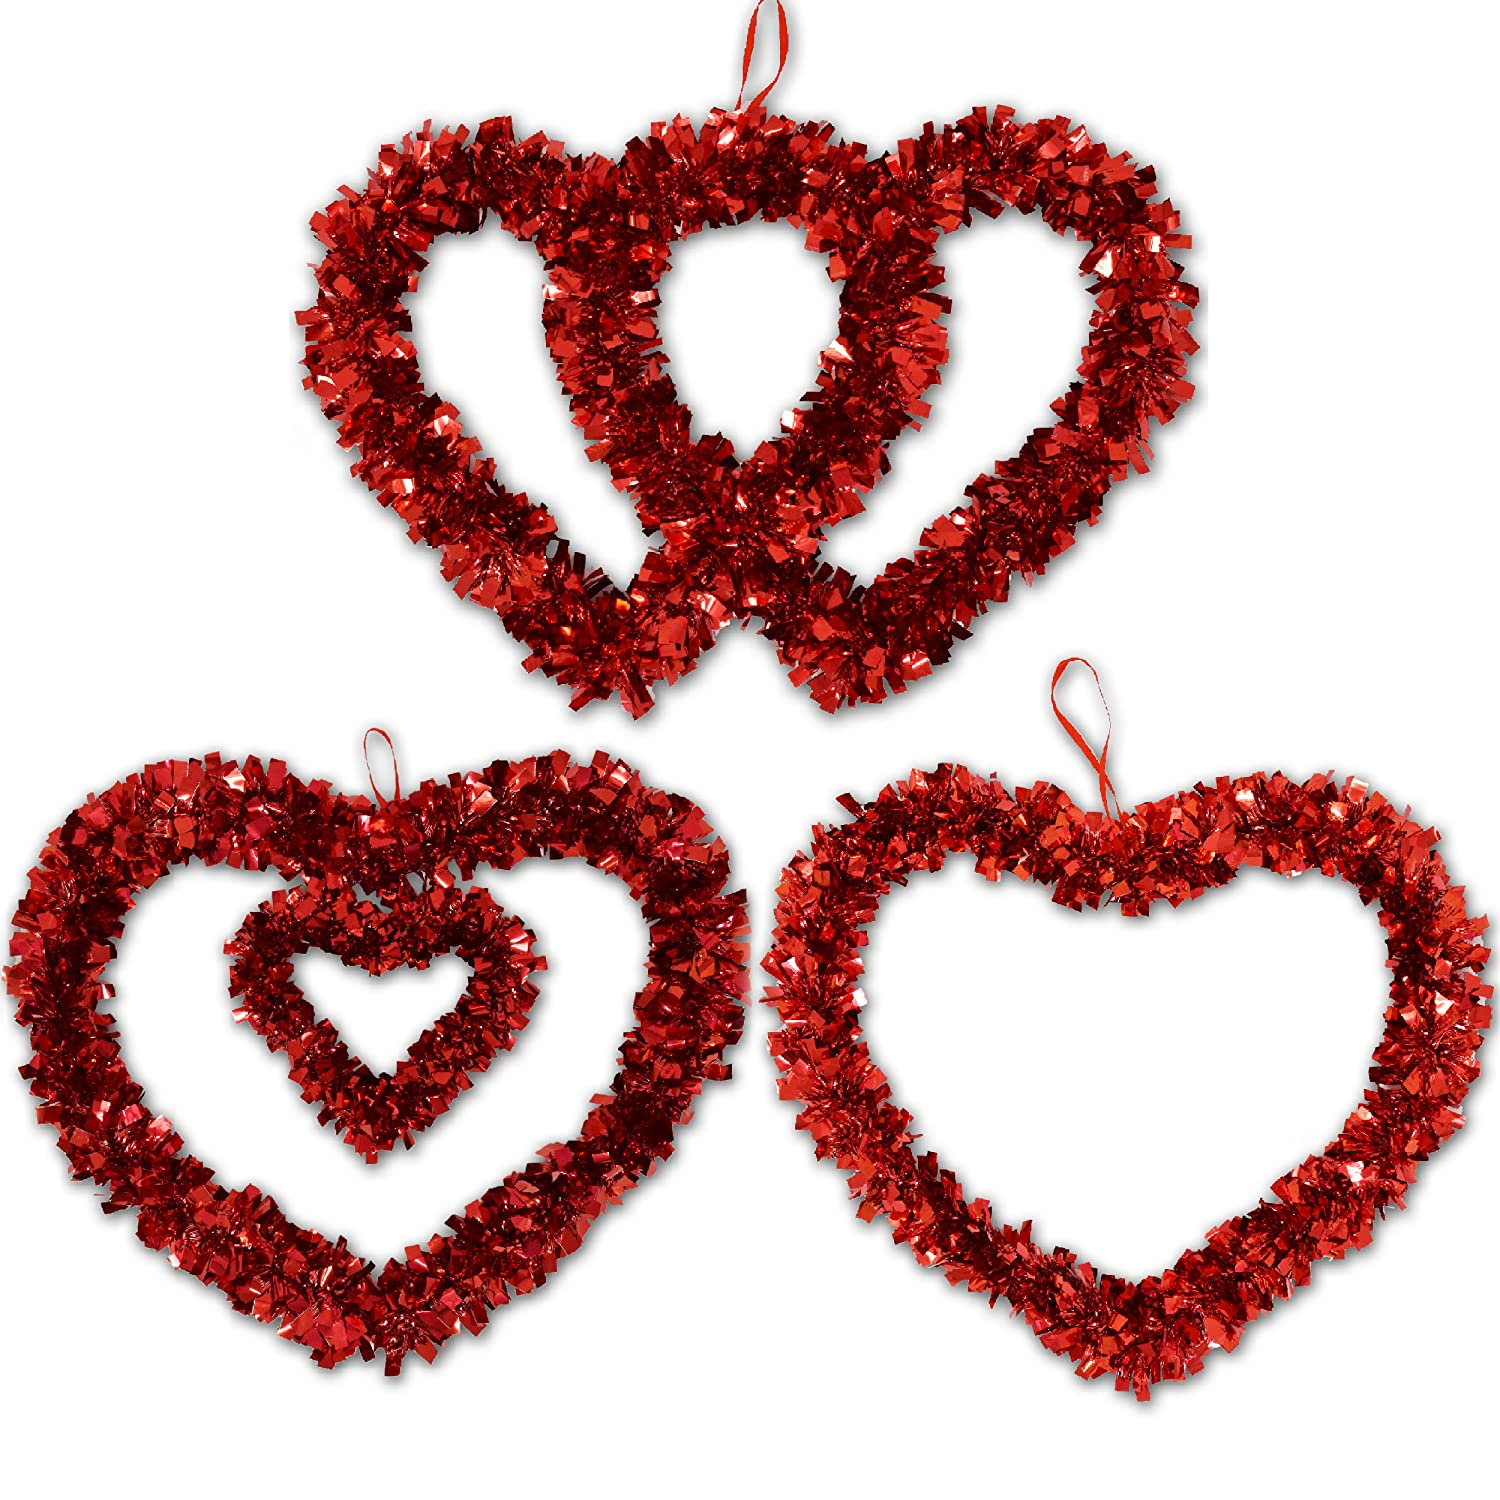 3 Pack 12 Inch Heart Valentine Wreath Decorations For Kitchen Lawn And  Patio Holiday Outdoor Decor